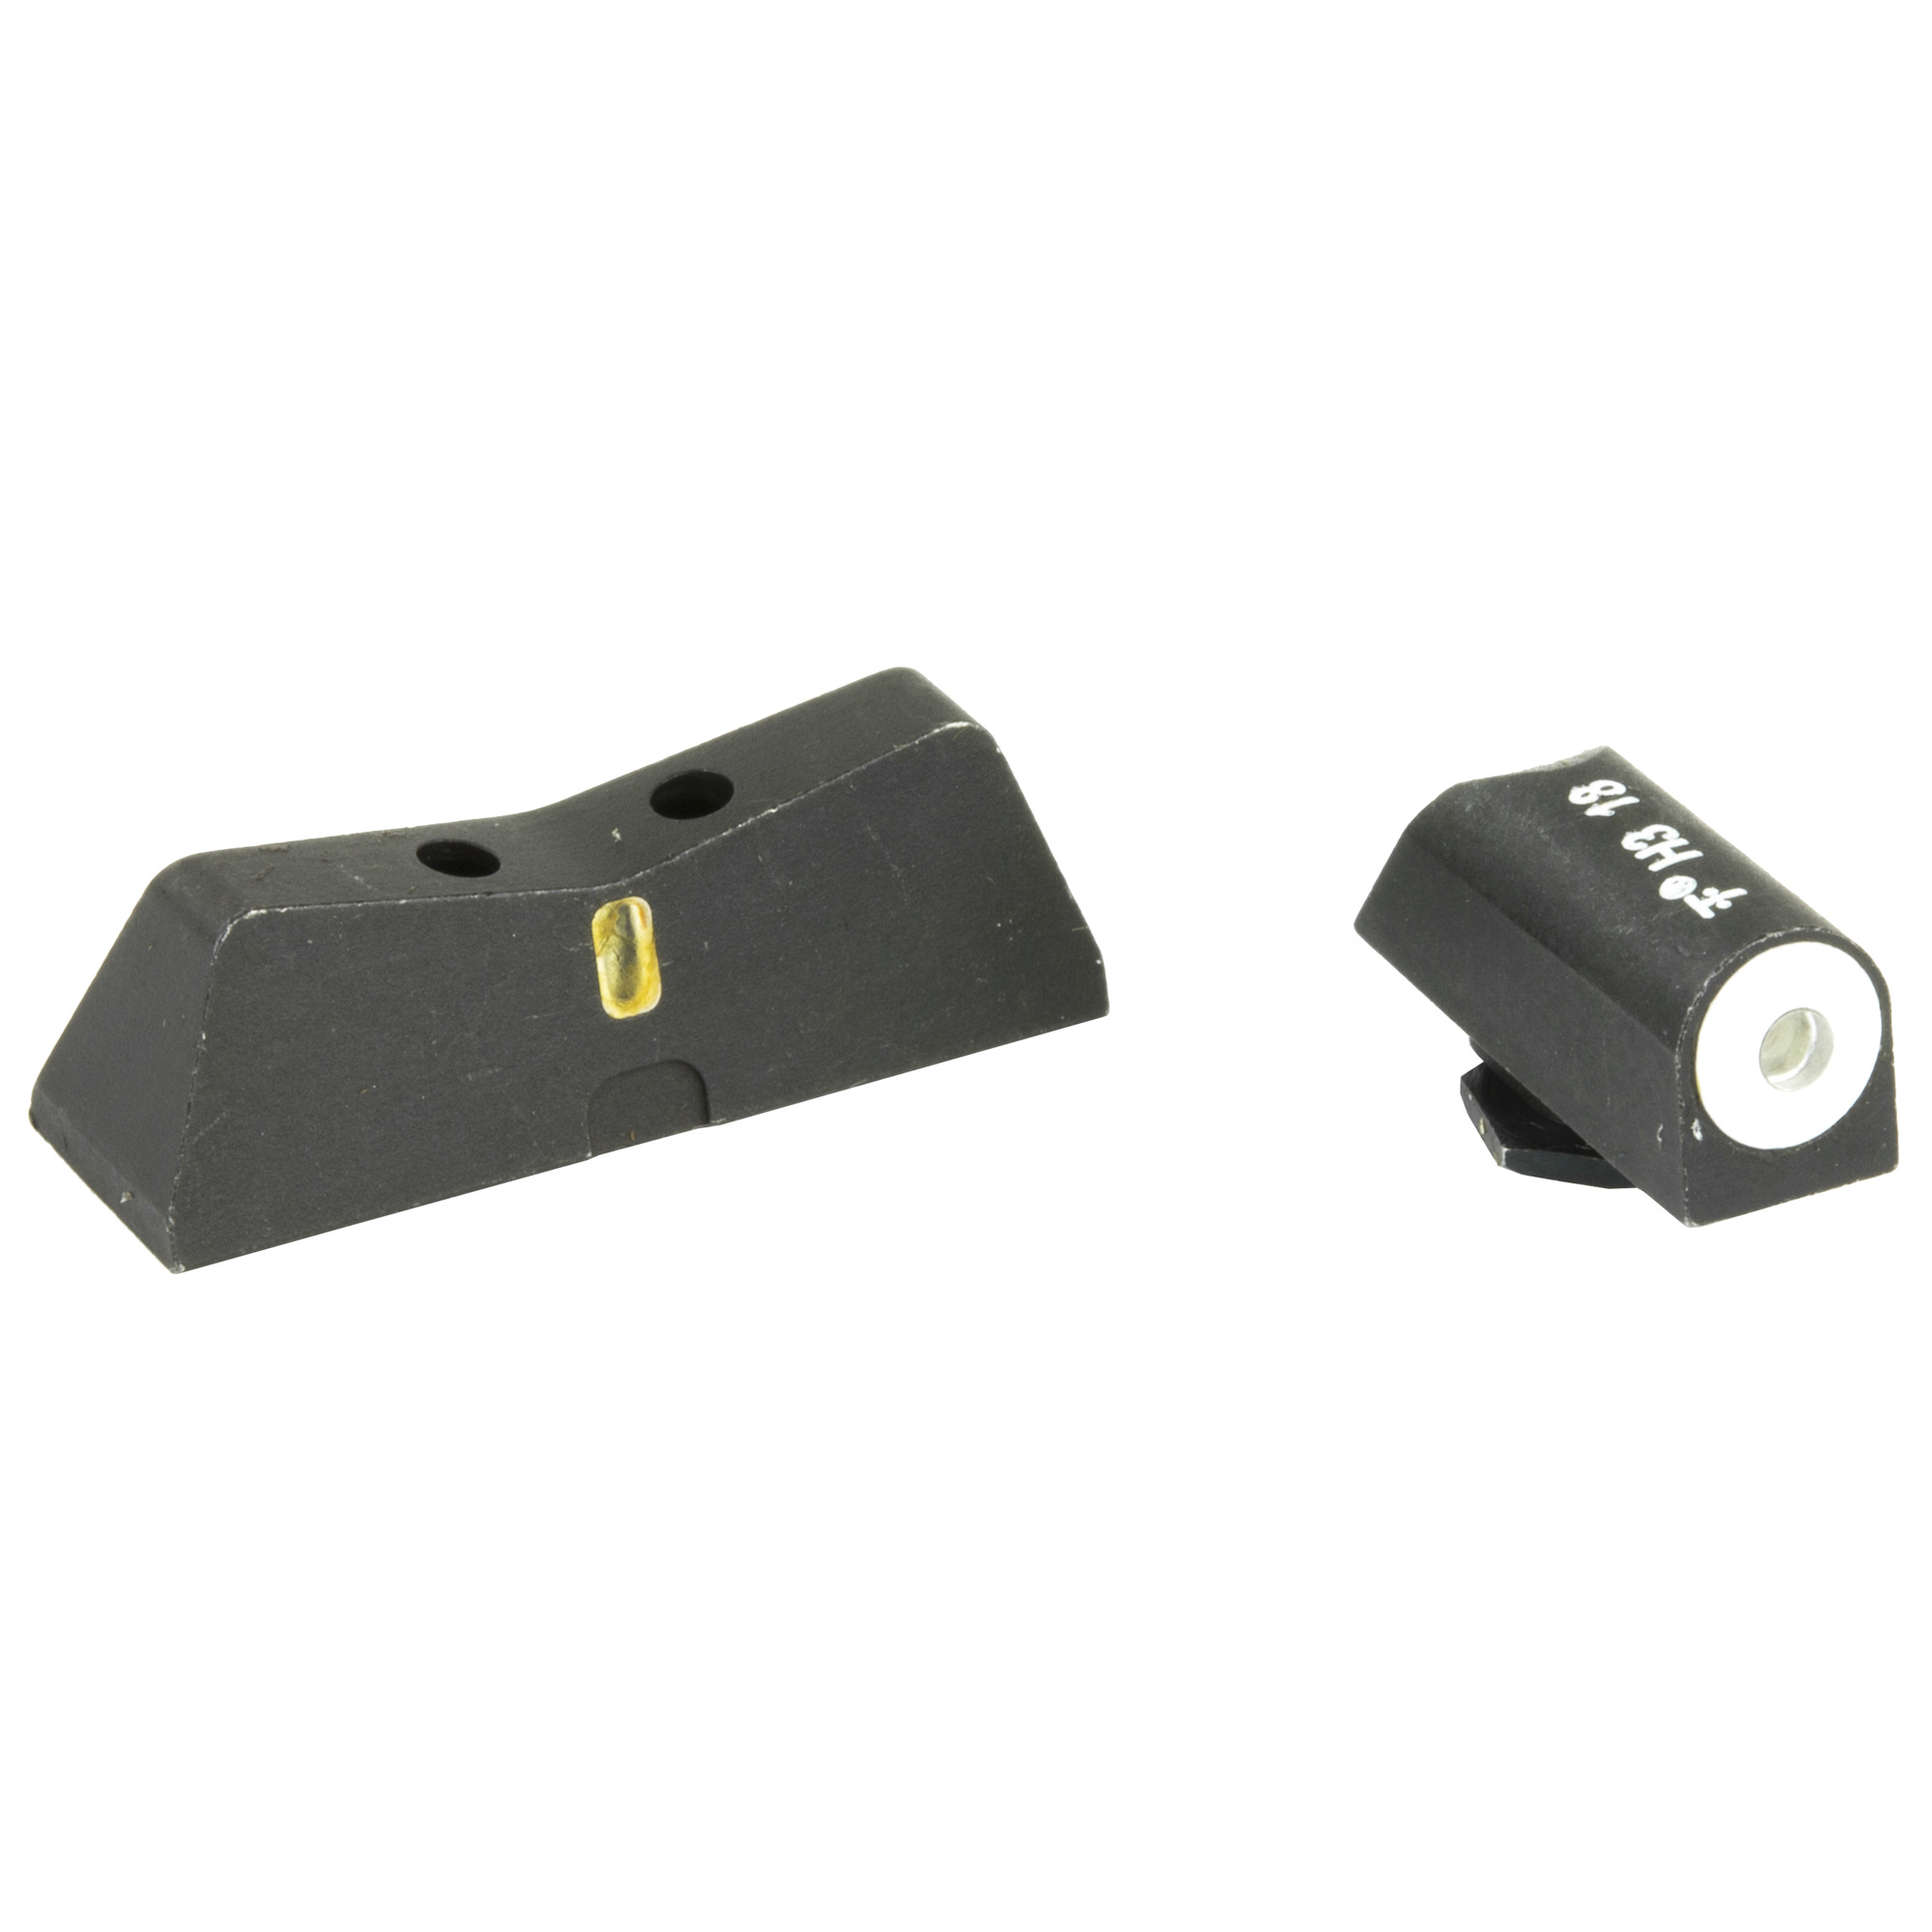 "The XS DXT Big Dot night sight is the ultimate defensive sight set. Fits Glock models 20"" 21"" 29"" 30"" 30S"" 37"" 40"" & 41. Precision machined in Fort Worth"" TX"" XS Sights feature a Big Dot Tritium front sight and express rear sight with a vertical tritium stripe for fast sight acquisition in all light conditions. Big Dot demands your attention - even in high stress and for those with poor eyesight"" aids in rapidly achieving combat effective hits. White dot reflects ambient light for best visibility in low light. Shallow V-Notch rear provides an unobstructed view of the front sight"" along with a greater field of view down range"" especially when moving and shooting. Day-Light"" Half-Light"" or Low-Light"" just ""dot the i"" and center the dot over your target within 15 yards. Outside Diameter Big Dot 0.188""; fits in common holsters. Installation might require filing to fit sight to dovetail"" do not use a sight press/pusher tool."